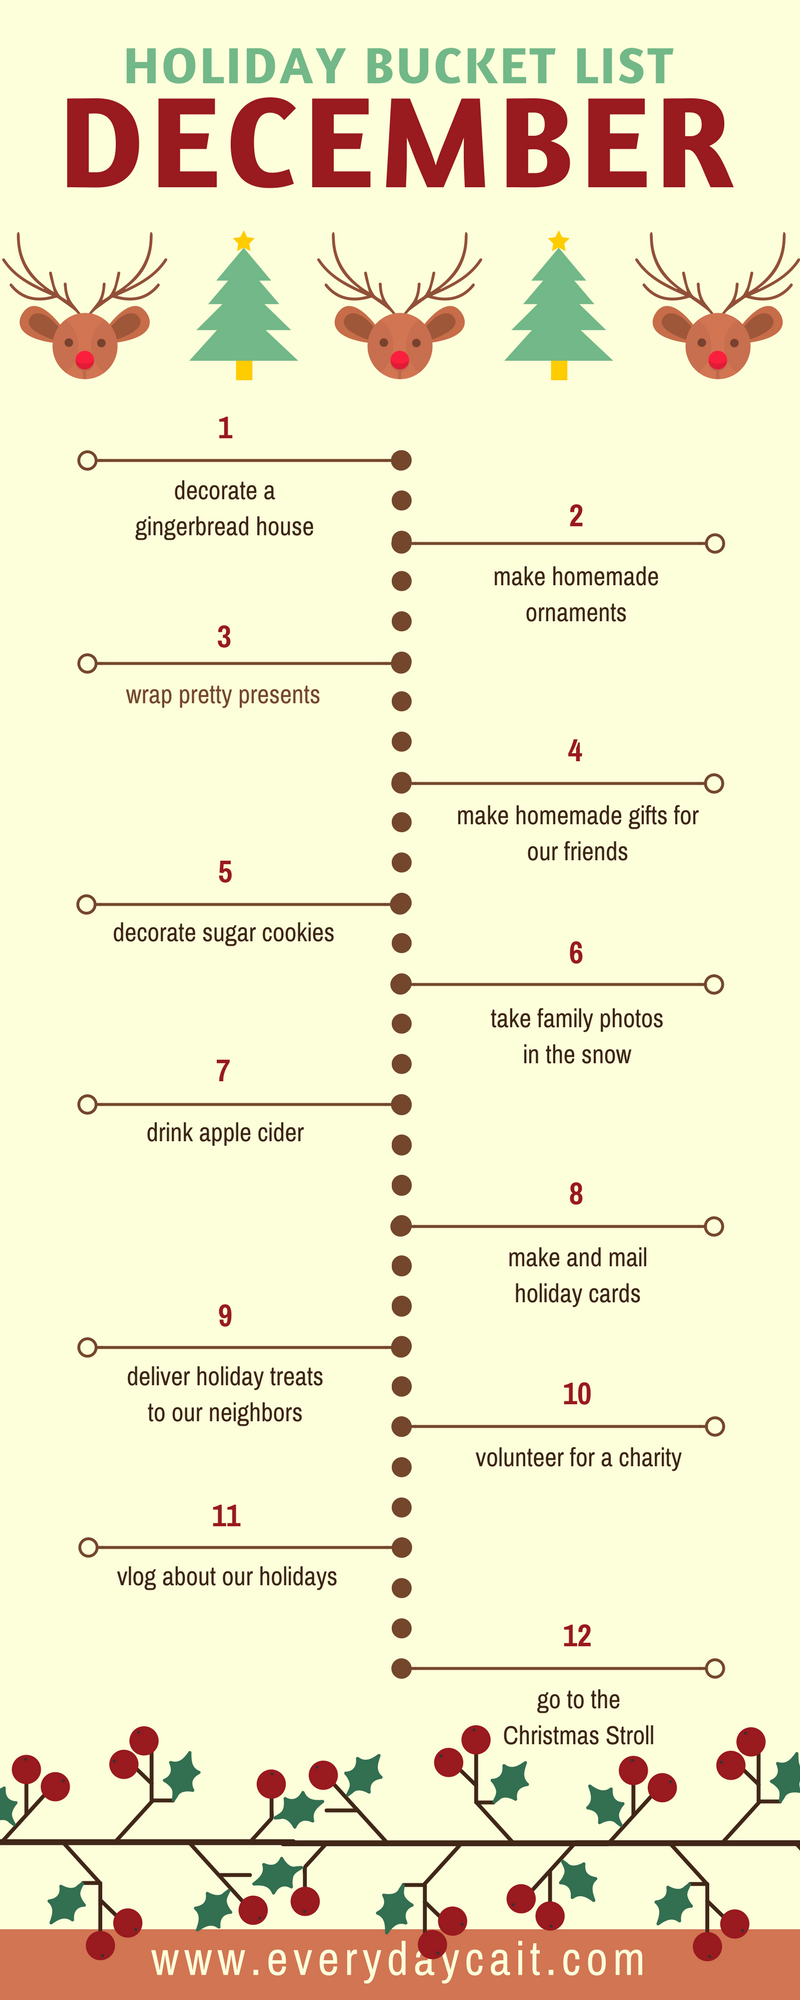 History of Ice Cream Timeline Infographic.png